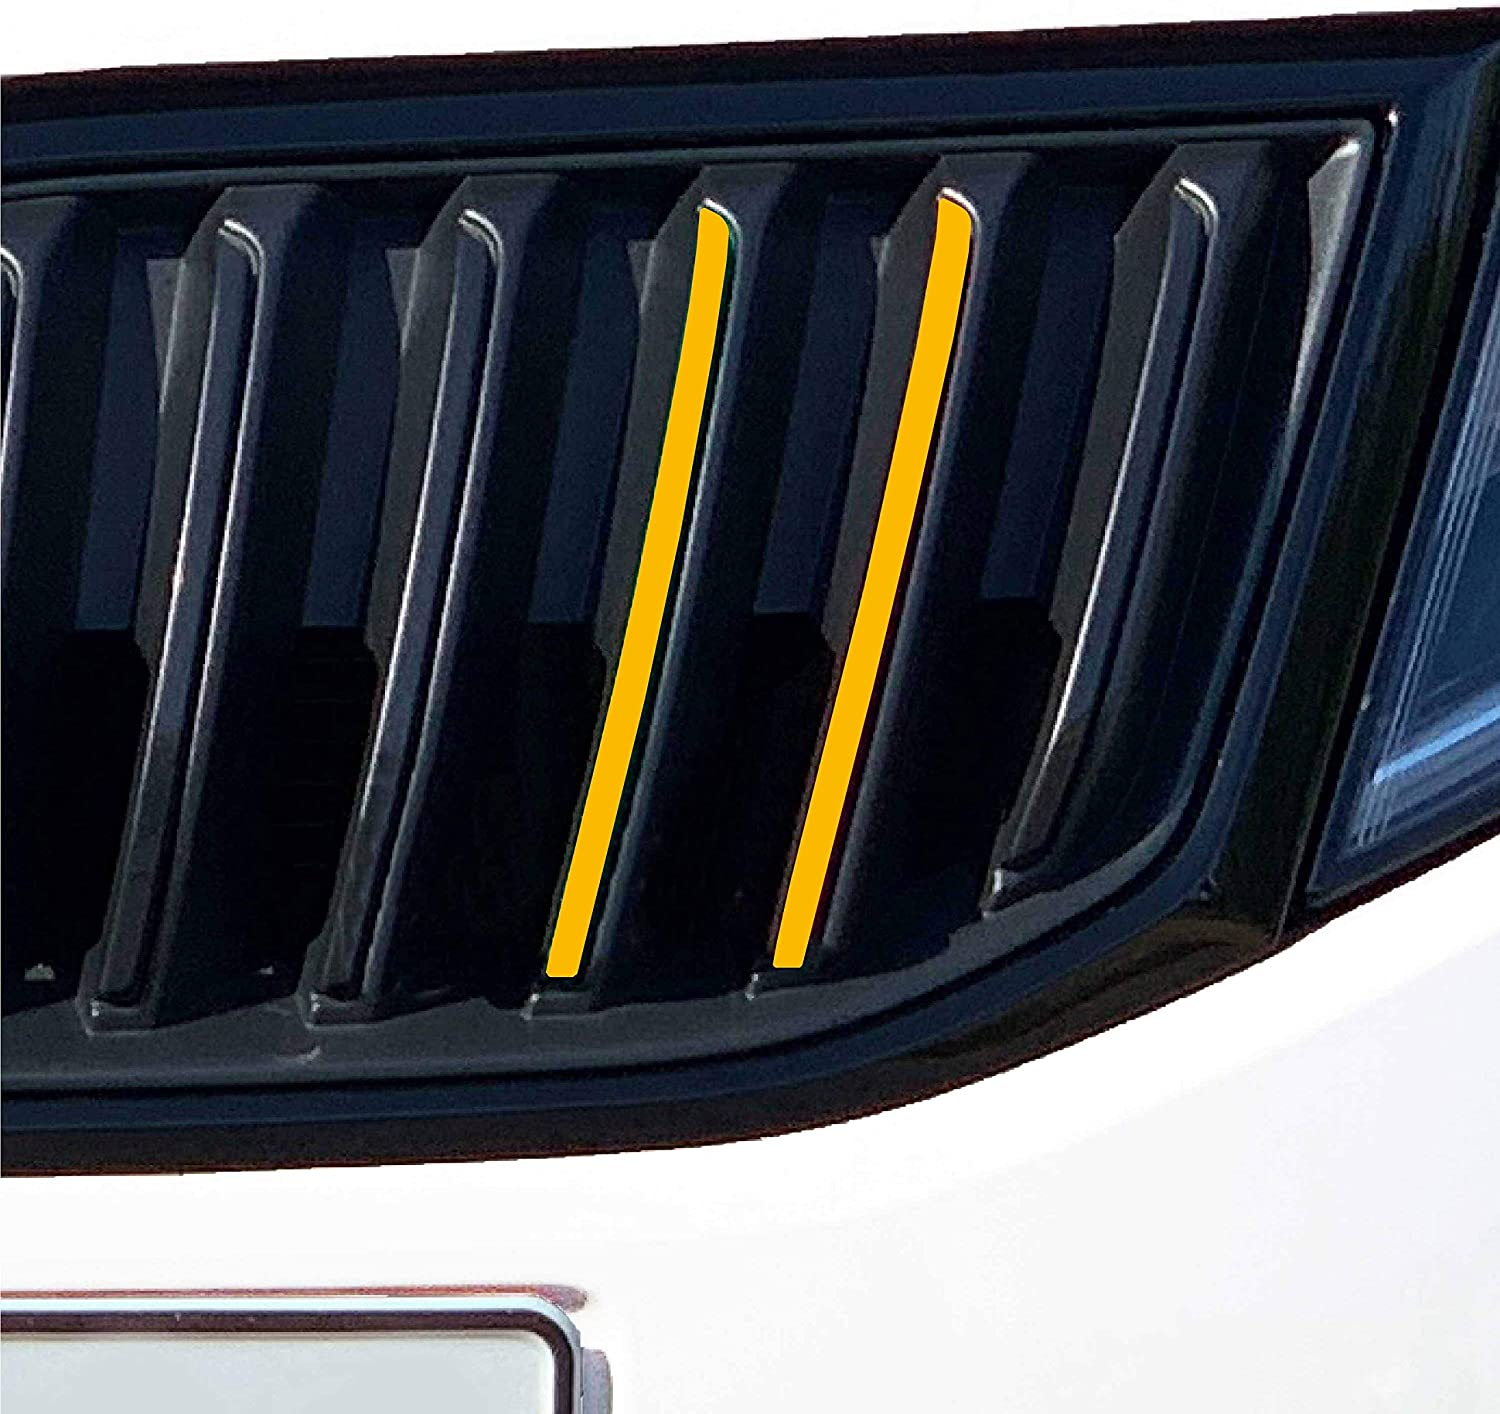 P037 20 Piece Radiator Grill Foil Set Front Stripes Grid Sticker Styling Foil Strips for Grill